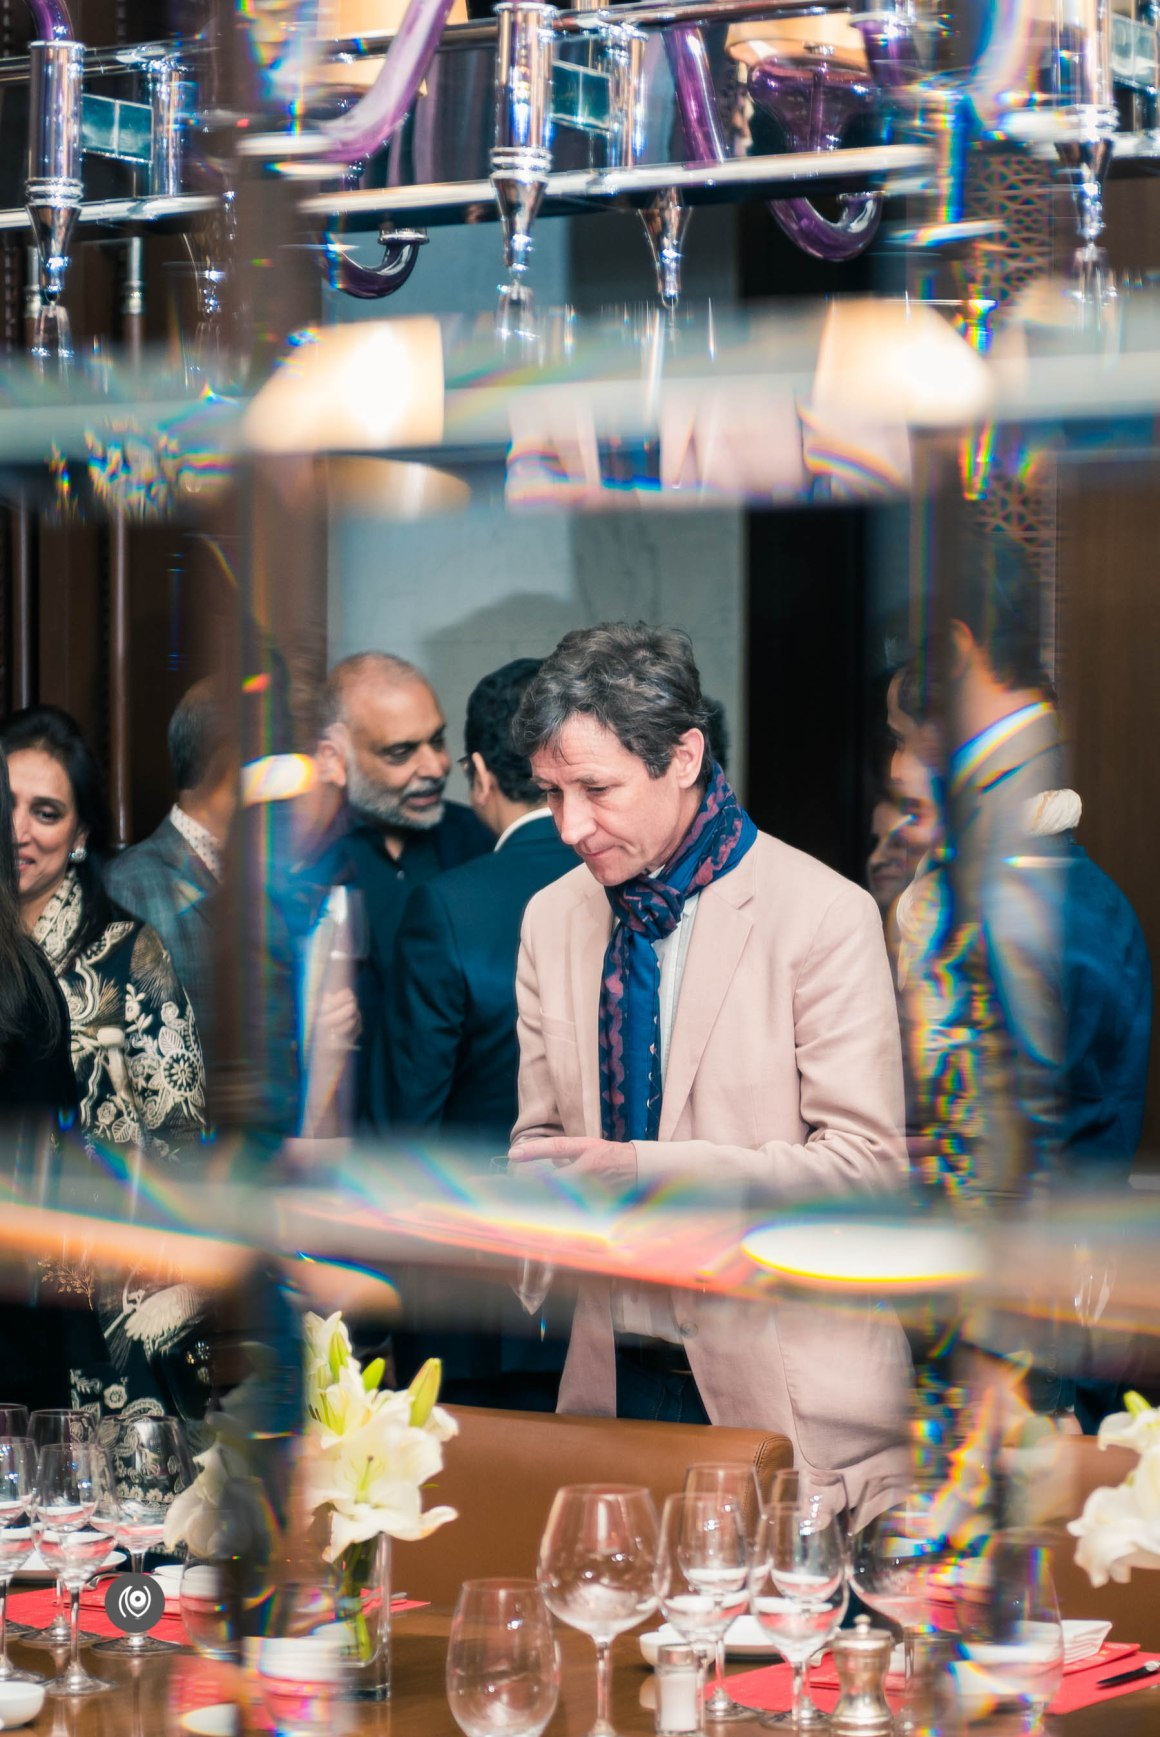 Naina.co, Naina Redhu, HTBrunch, Hindustan Times, Hindustan Times Brunch, Jamal Shaikh, Lubna Salim, The Leela Palace, Chanakyapuri, Dinner, Private Dinner, EyesForDining, Le Cirque, Chef Matteo Fontana, Siddharth Dhanvant Shanghvi, EyesForDining, EyesForLuxury, Tate, Tate Museum, Maria Balshaw, Woman Director, Subodh Gupta, Bharti Kher, Meru Gokhale, Penguin Random House, Nick Merriman, Hari Bhartia, Dattaraj Salgaocar, Patrick French, Arun Saraf, Kavita Bhartia, Art, Photographer Life, Lifestyle Photographer India, Luxury Photographer India, Food Photographer India, Lifestyle Blogger India, Luxury Blogger India, Food Blogger India